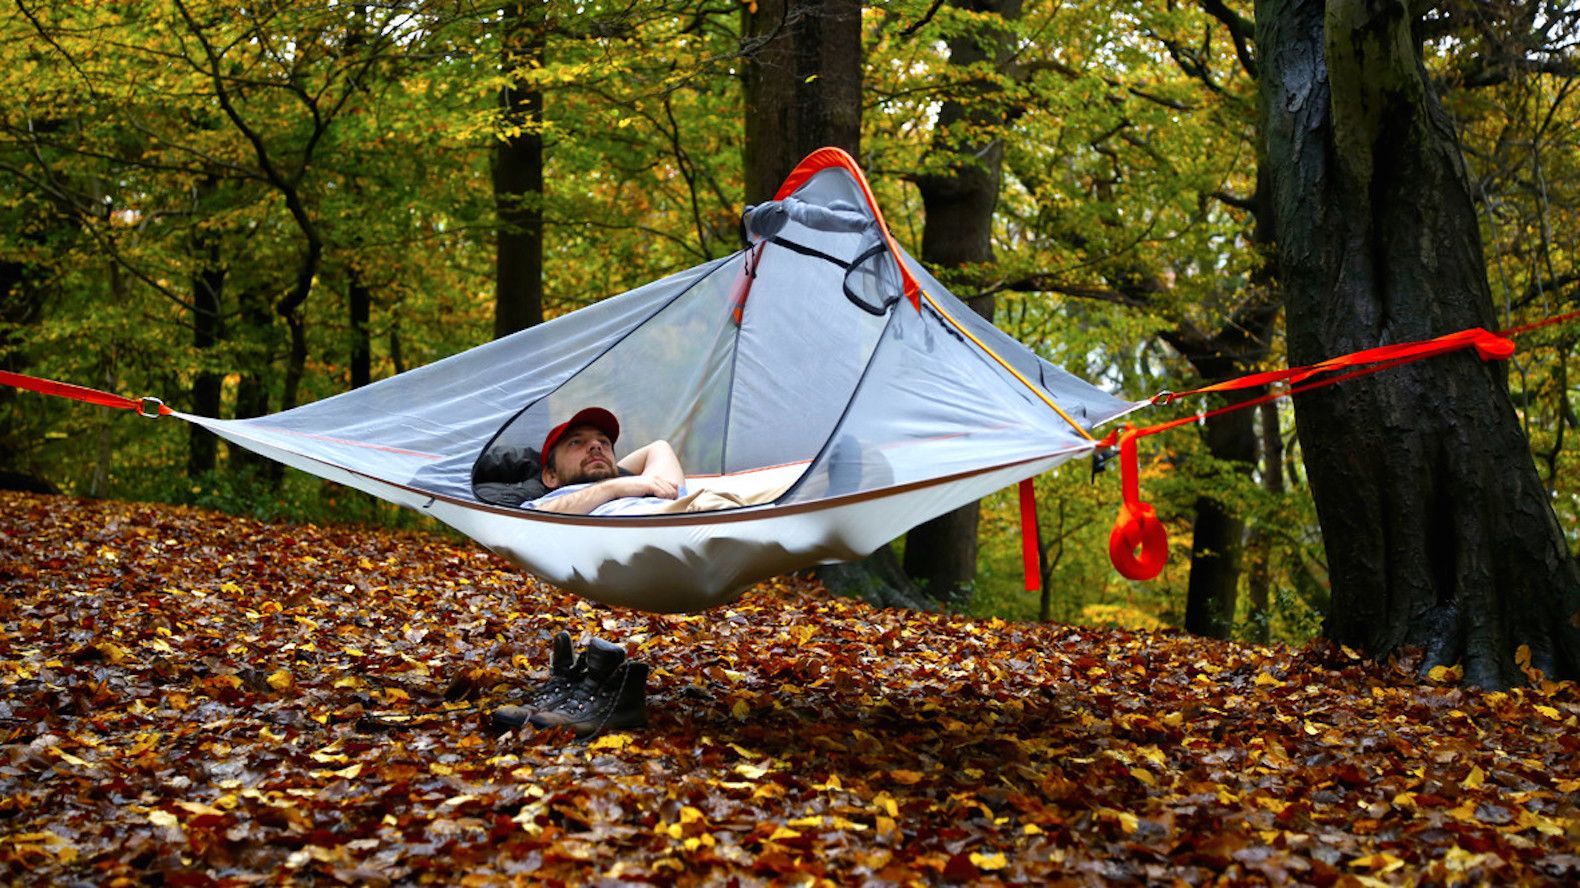 camping ultra light and portable flite tent lets you camp in the trees      rh   pinterest